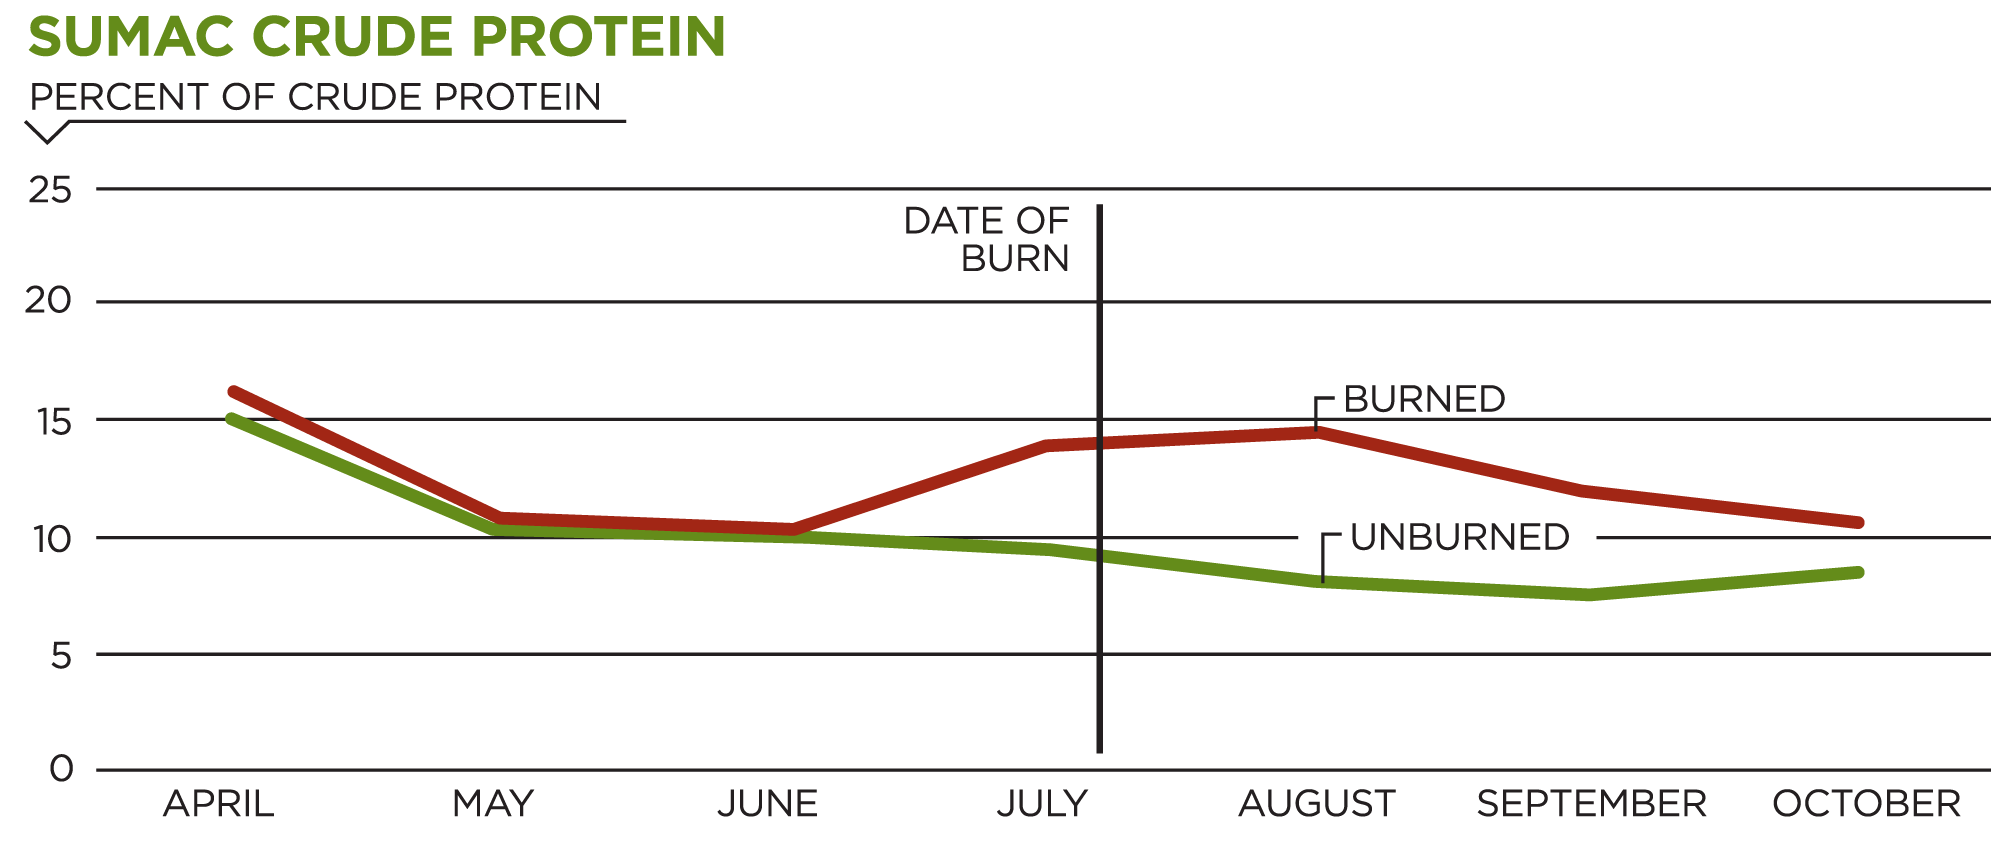 Sumac Crude Protein Chart showing differences in crude protein in plants before and after growing season prescribed burns.